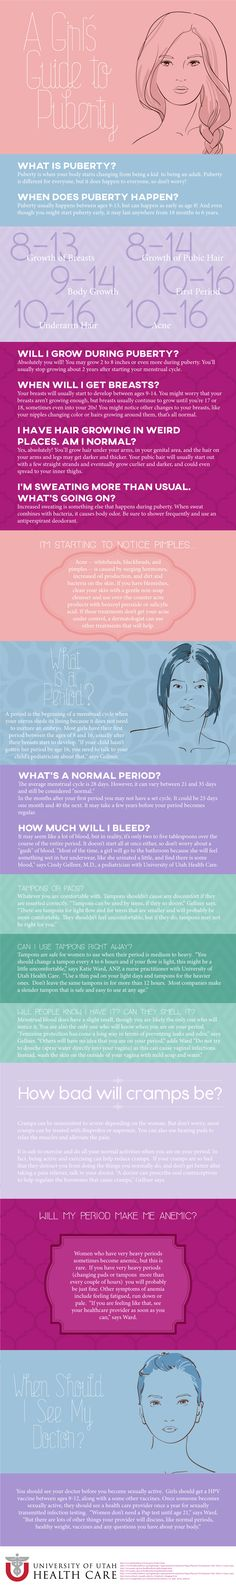 A Girl's Guide to Puberty | Health Feed, University of Utah Health Care